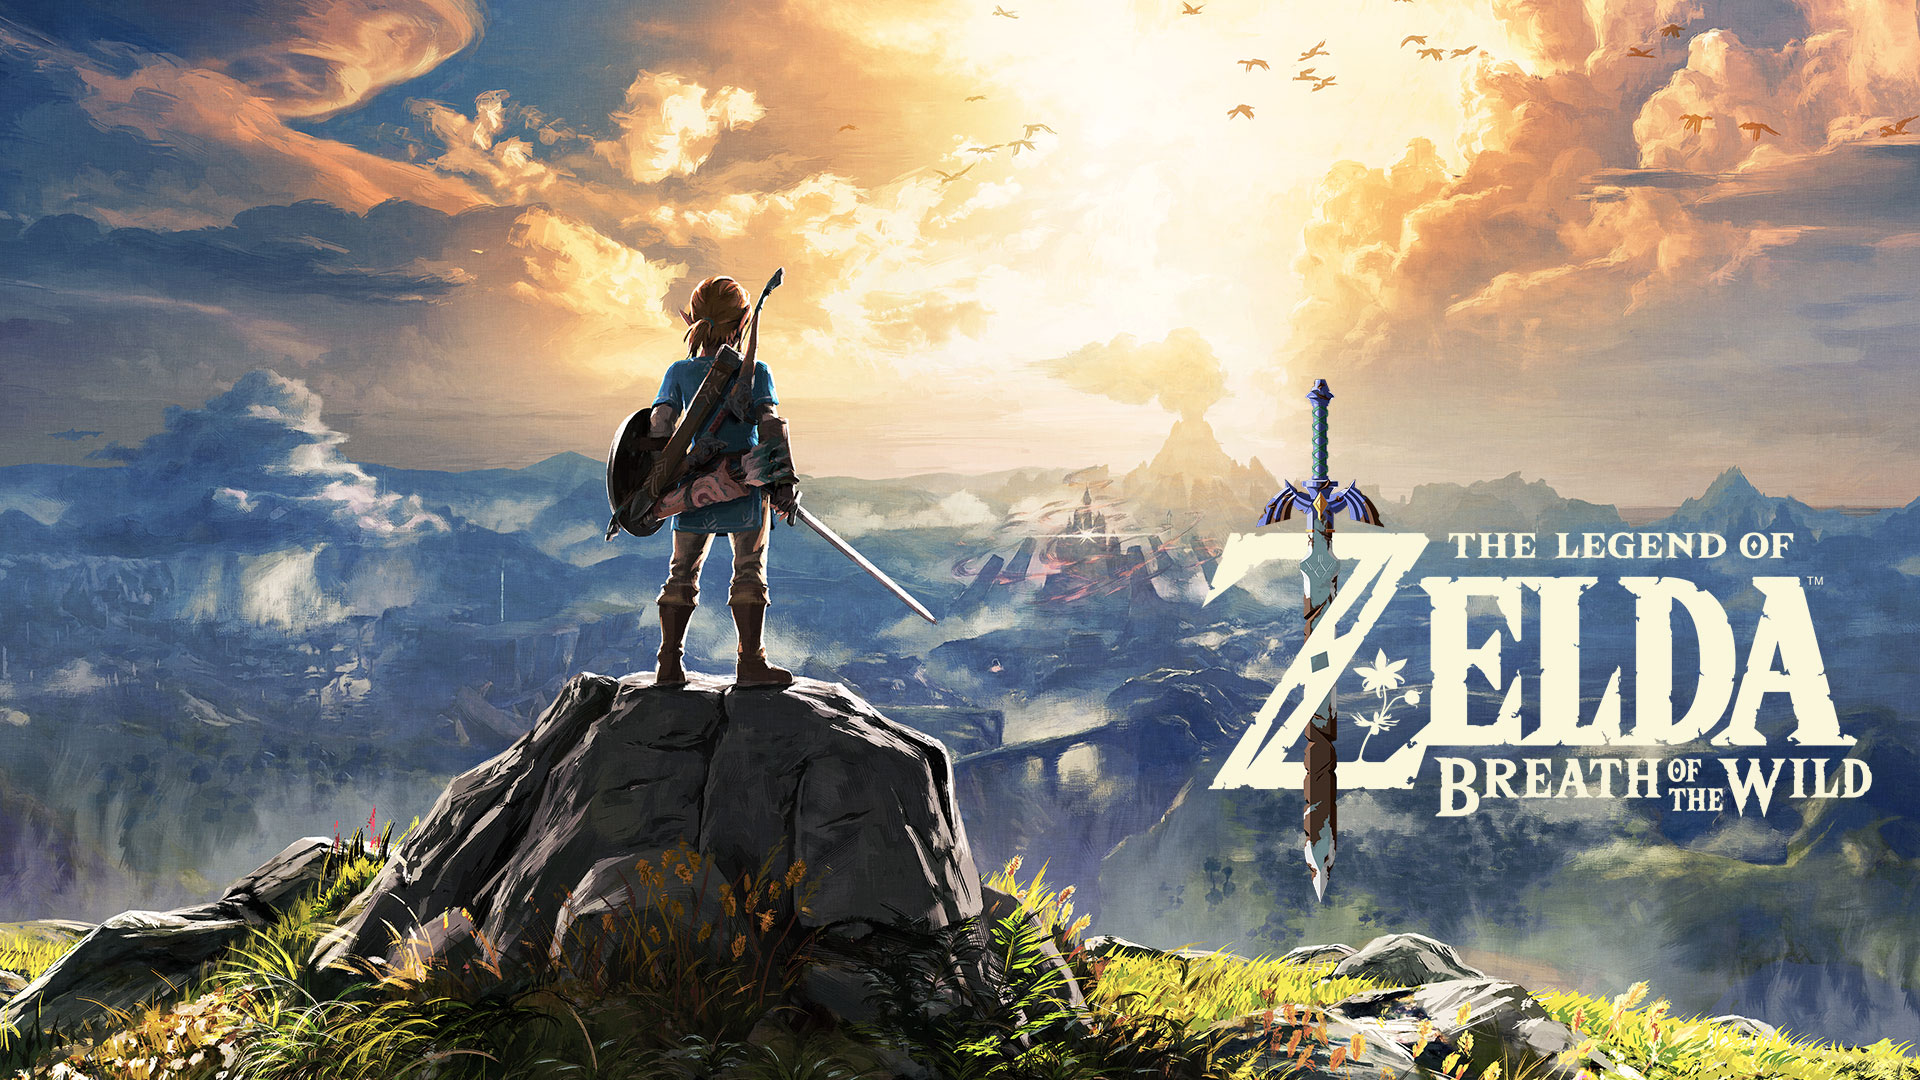 The Legend of Zelda Breath of the Wild Full Version PC Game Download